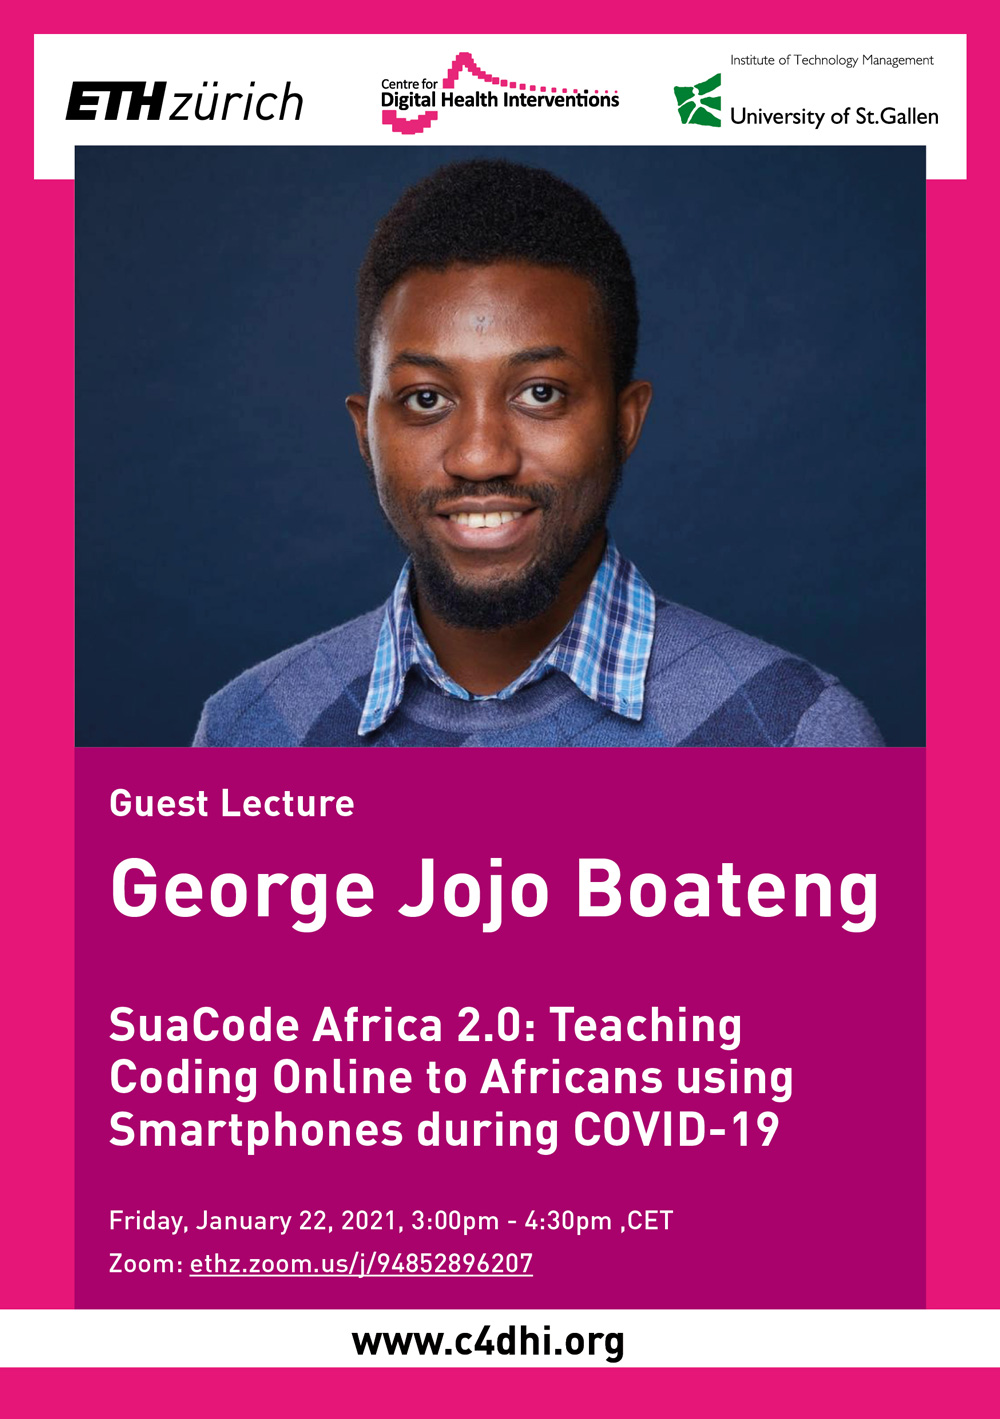 Guest Lecture by G. Boateng on SuaCode Africa 2.0: Teaching Coding Online to Africans using Smartphones during COVID-19, January 22, 2021